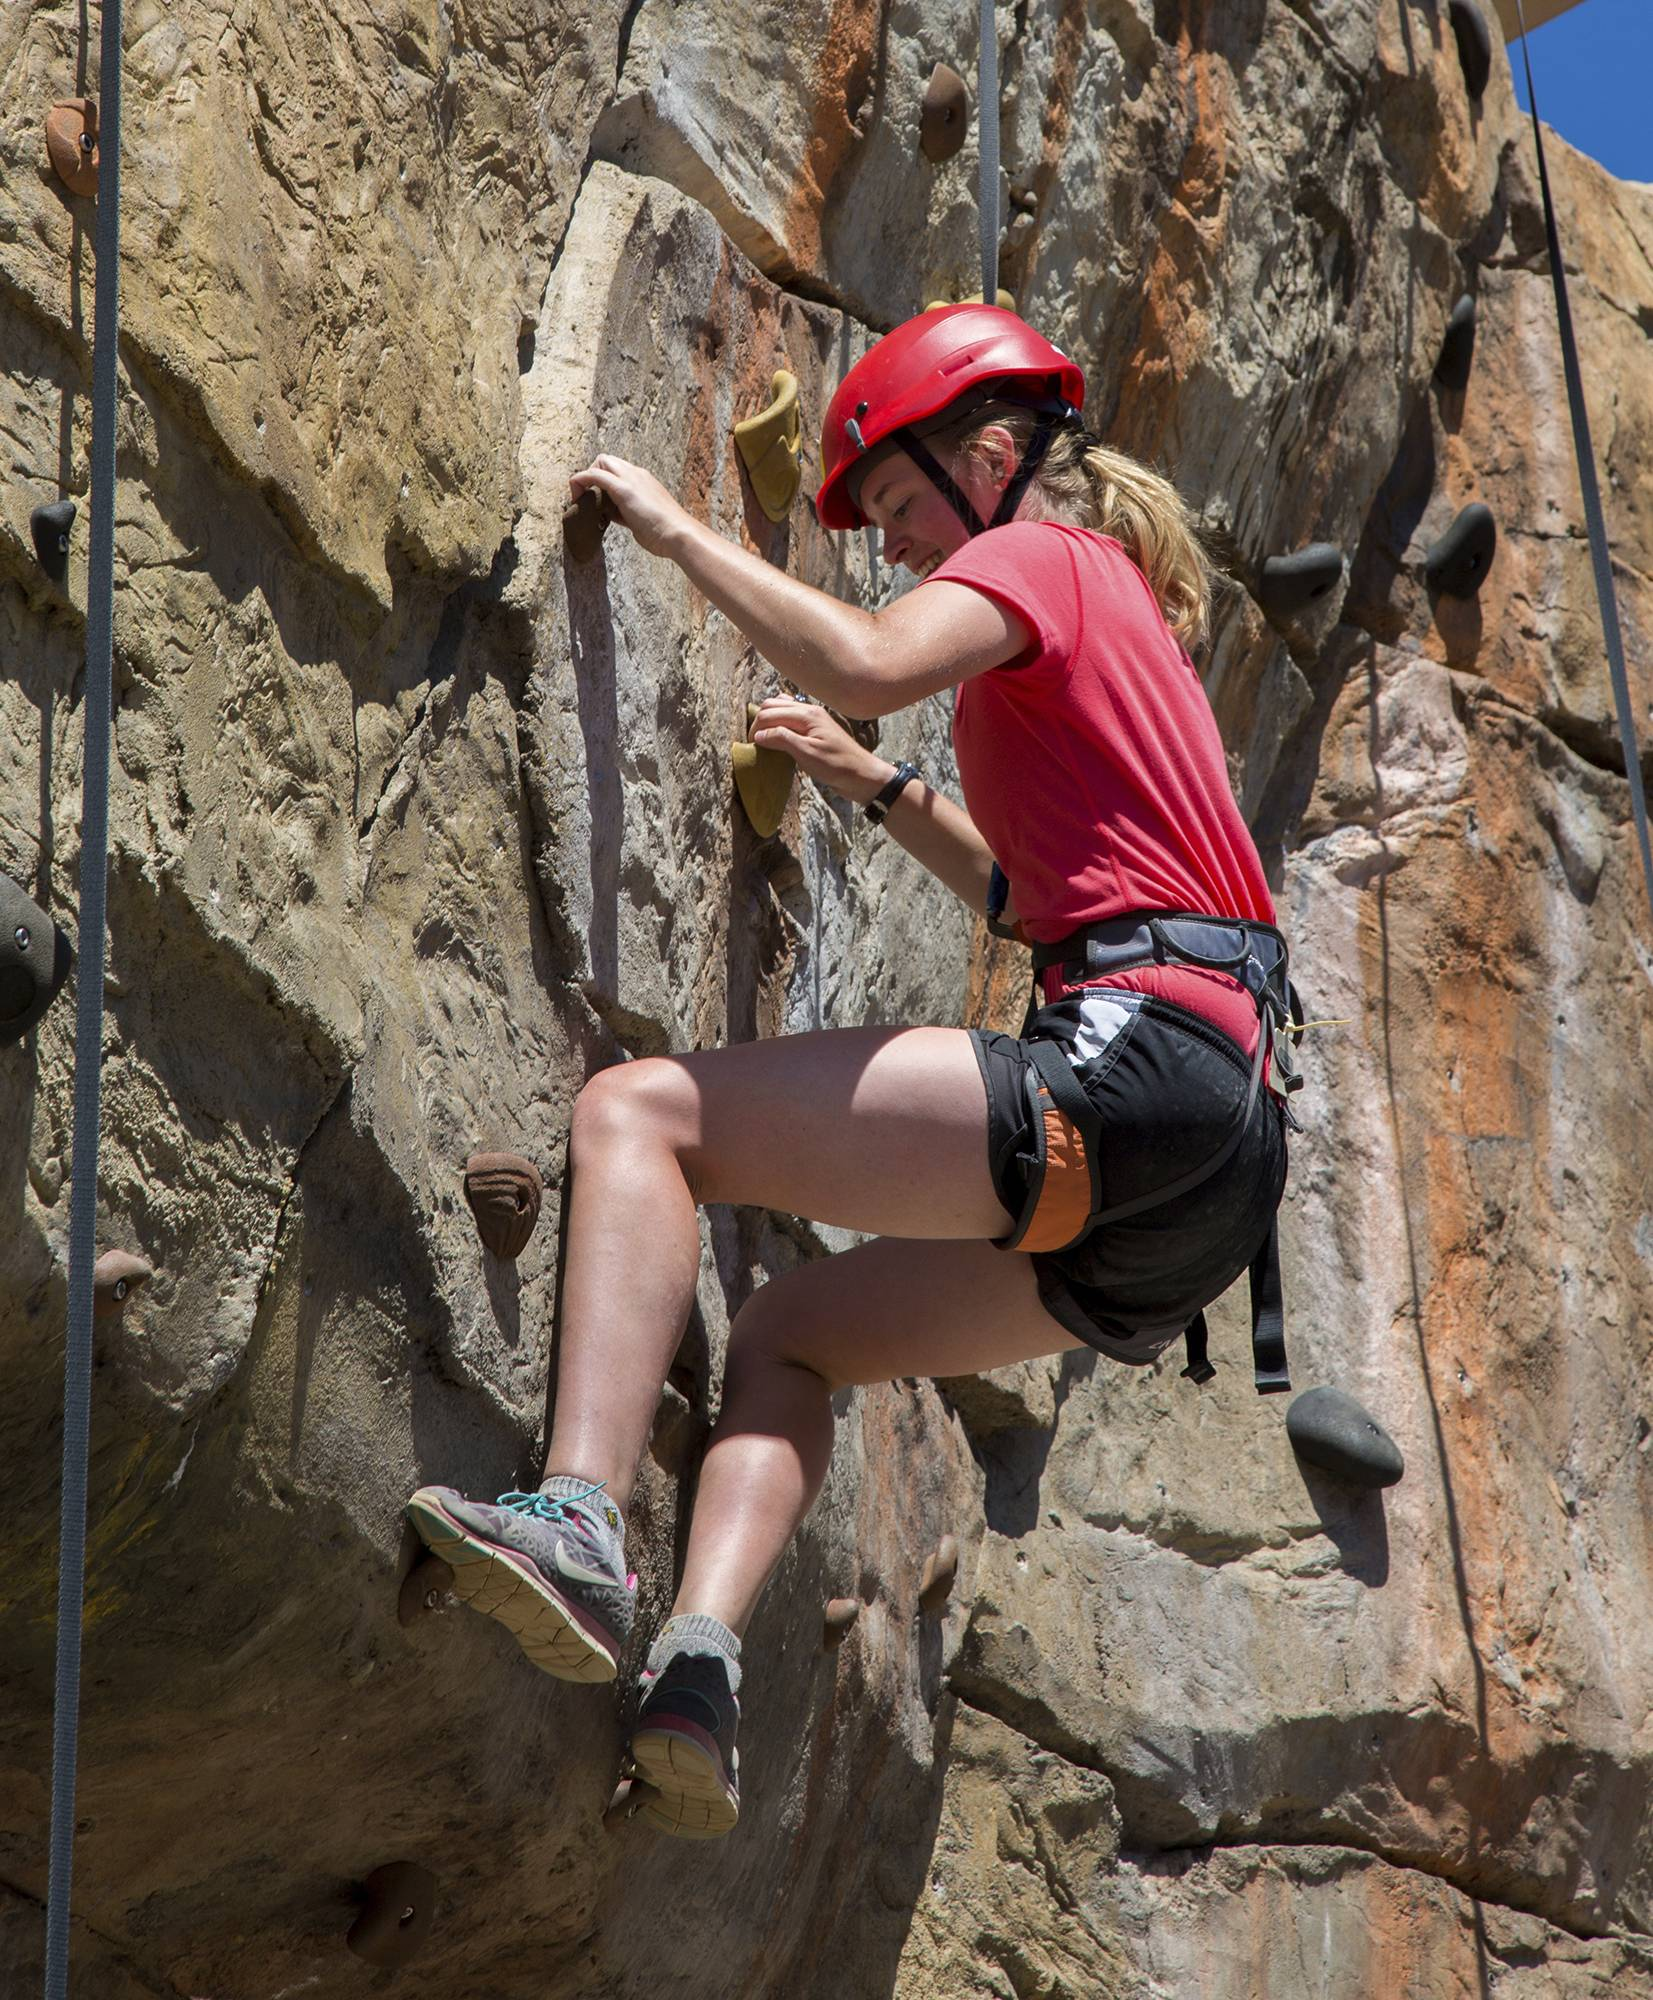 A Venture Scout scales one of the rock walls during her crew's adventure at the Summit Bechtel Reserve near Glen Jean, West Virginia.